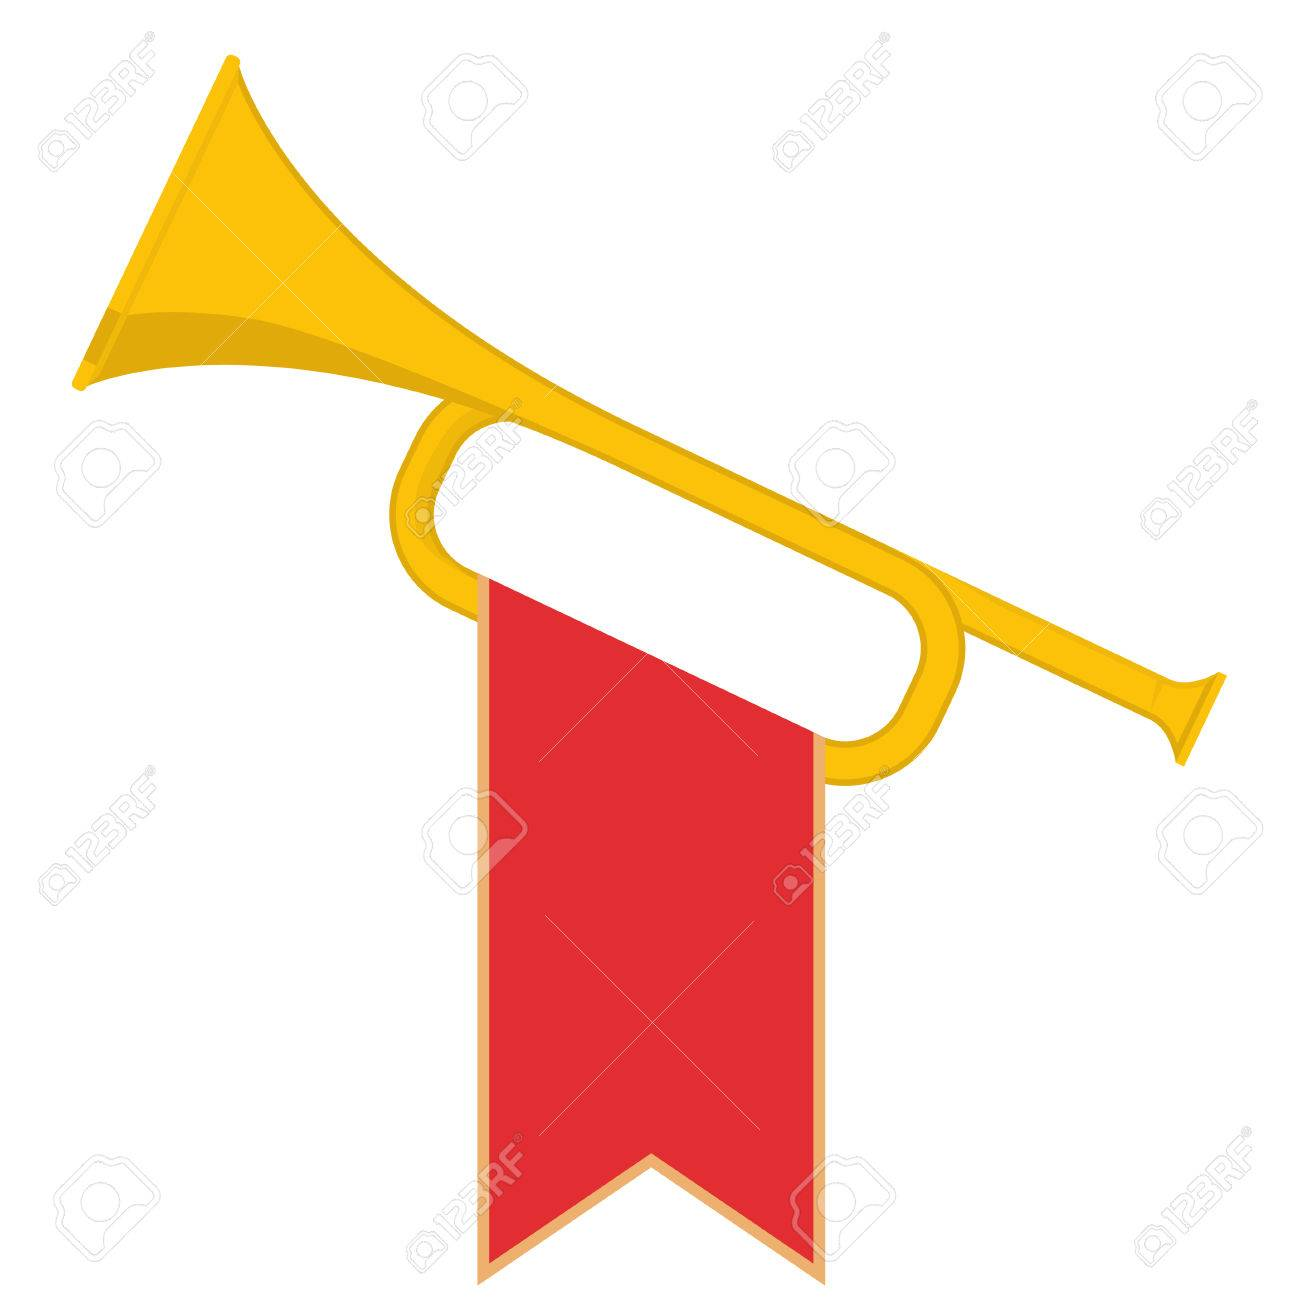 Trumpet with red flag icon  Brass Bugle Cartoon Illustration